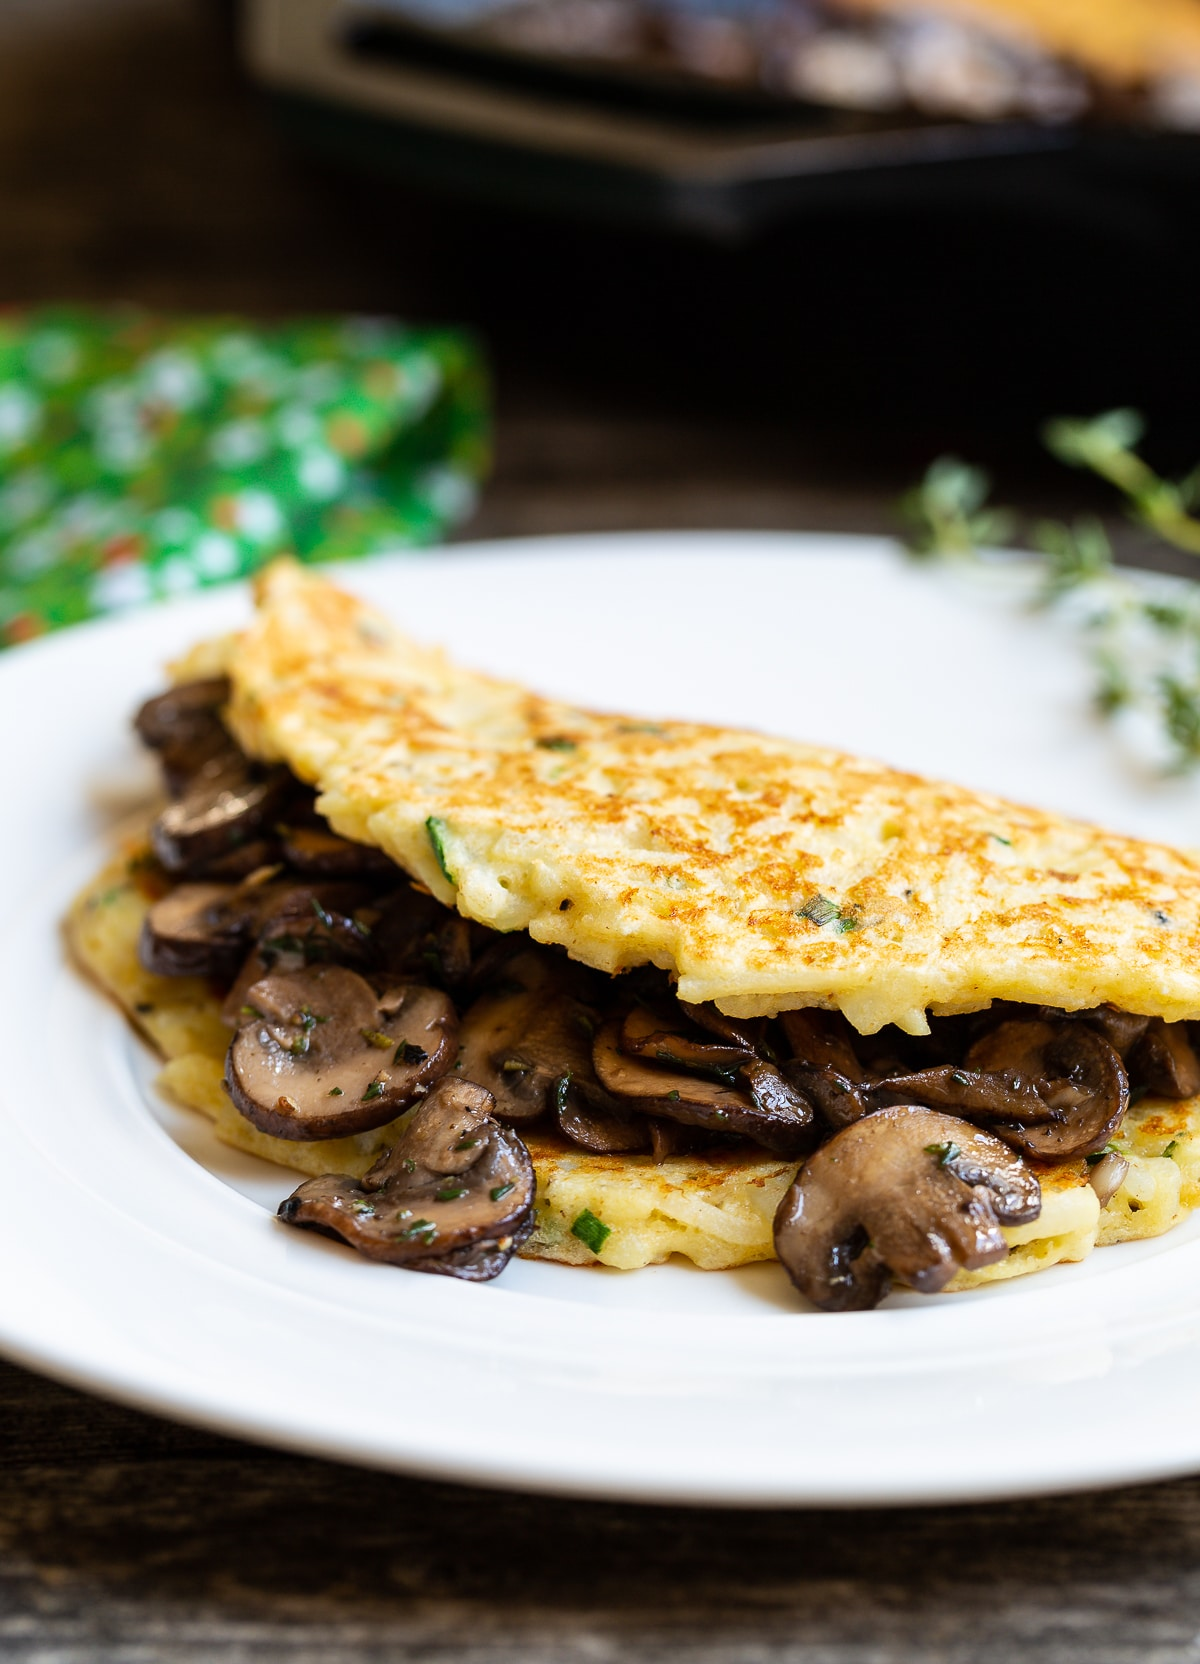 Best Boxty Recipe: Irish Potato Pancakes with Sauteed Mushrooms and Whiskey Gravy #stpaddyday #stpatricksday #irish #recipe